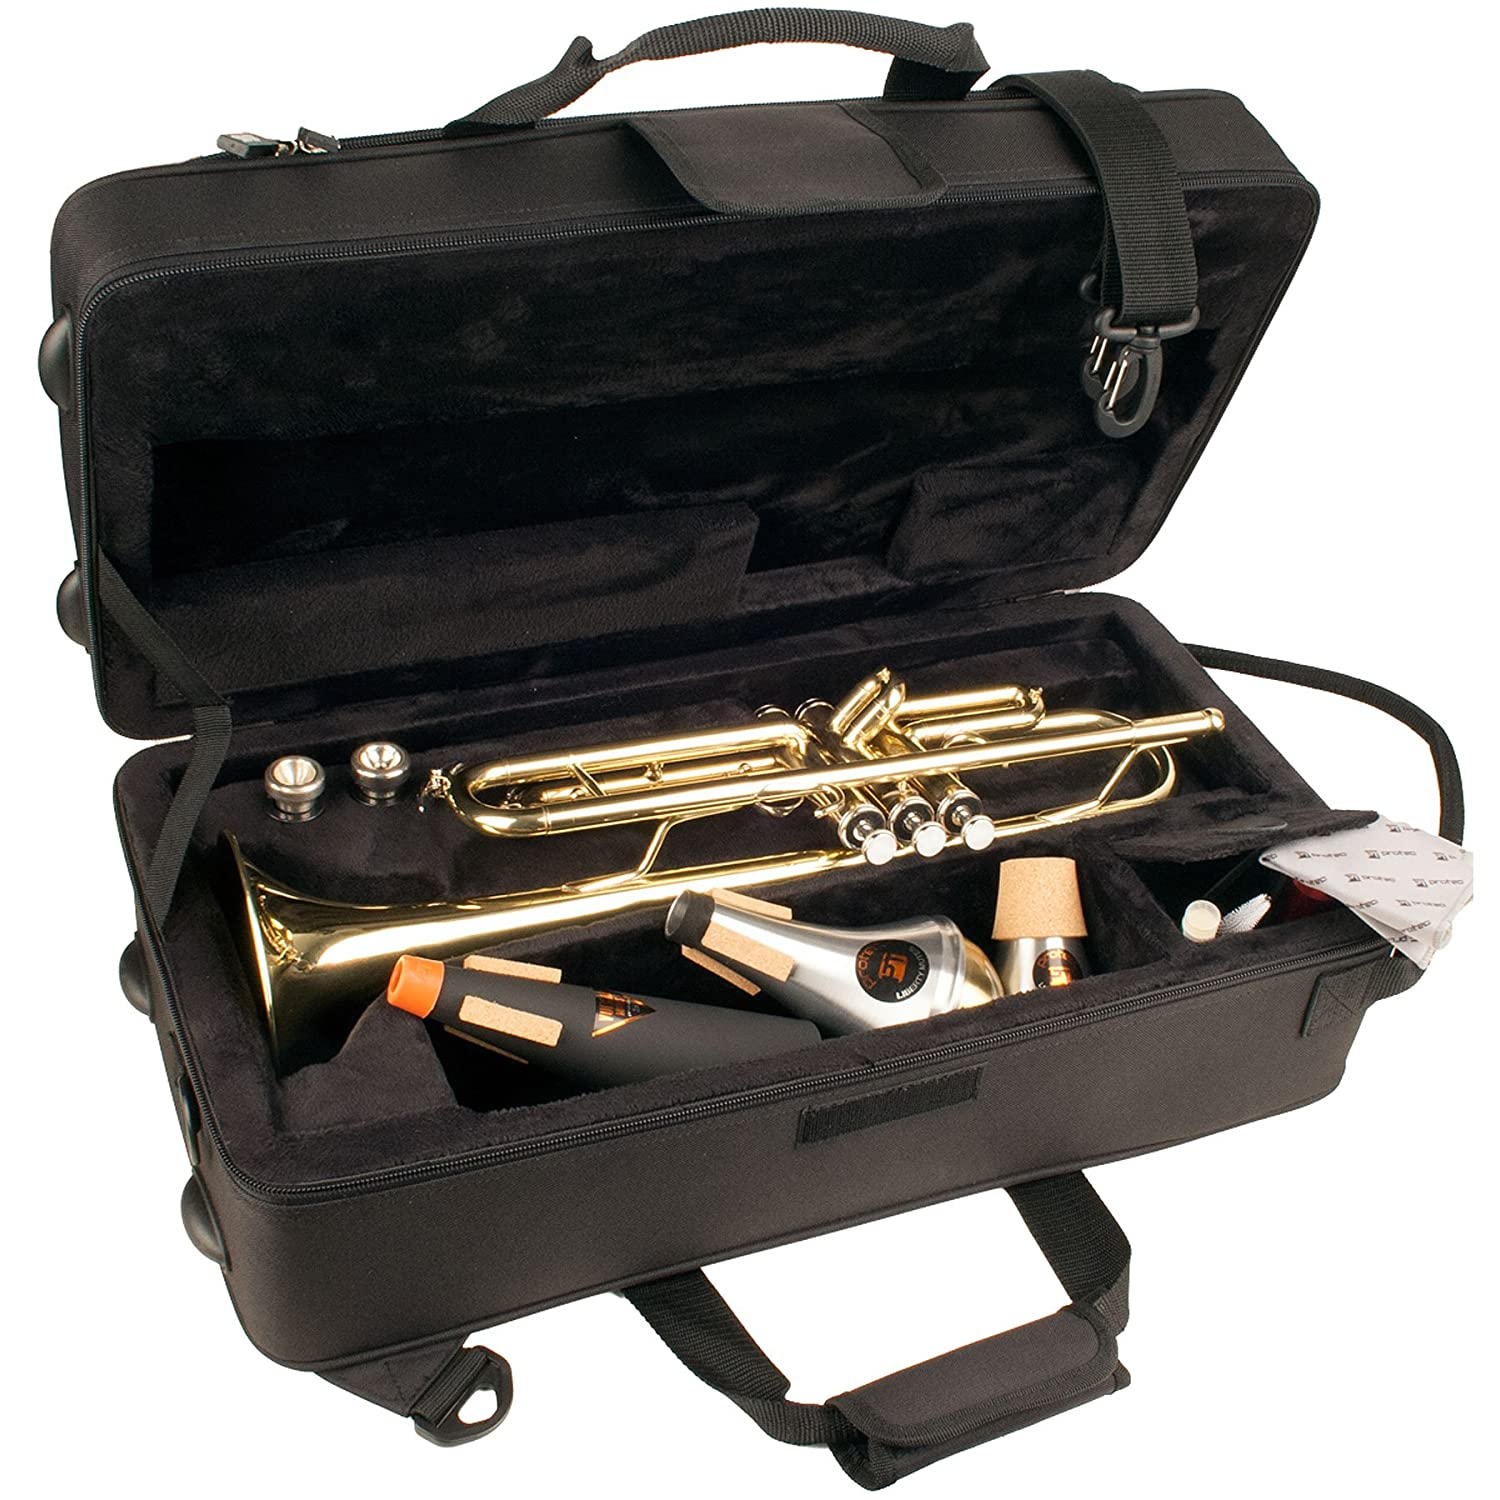 Protec Trumpet Lightweight MAX Case with Mute Section, Black MX301